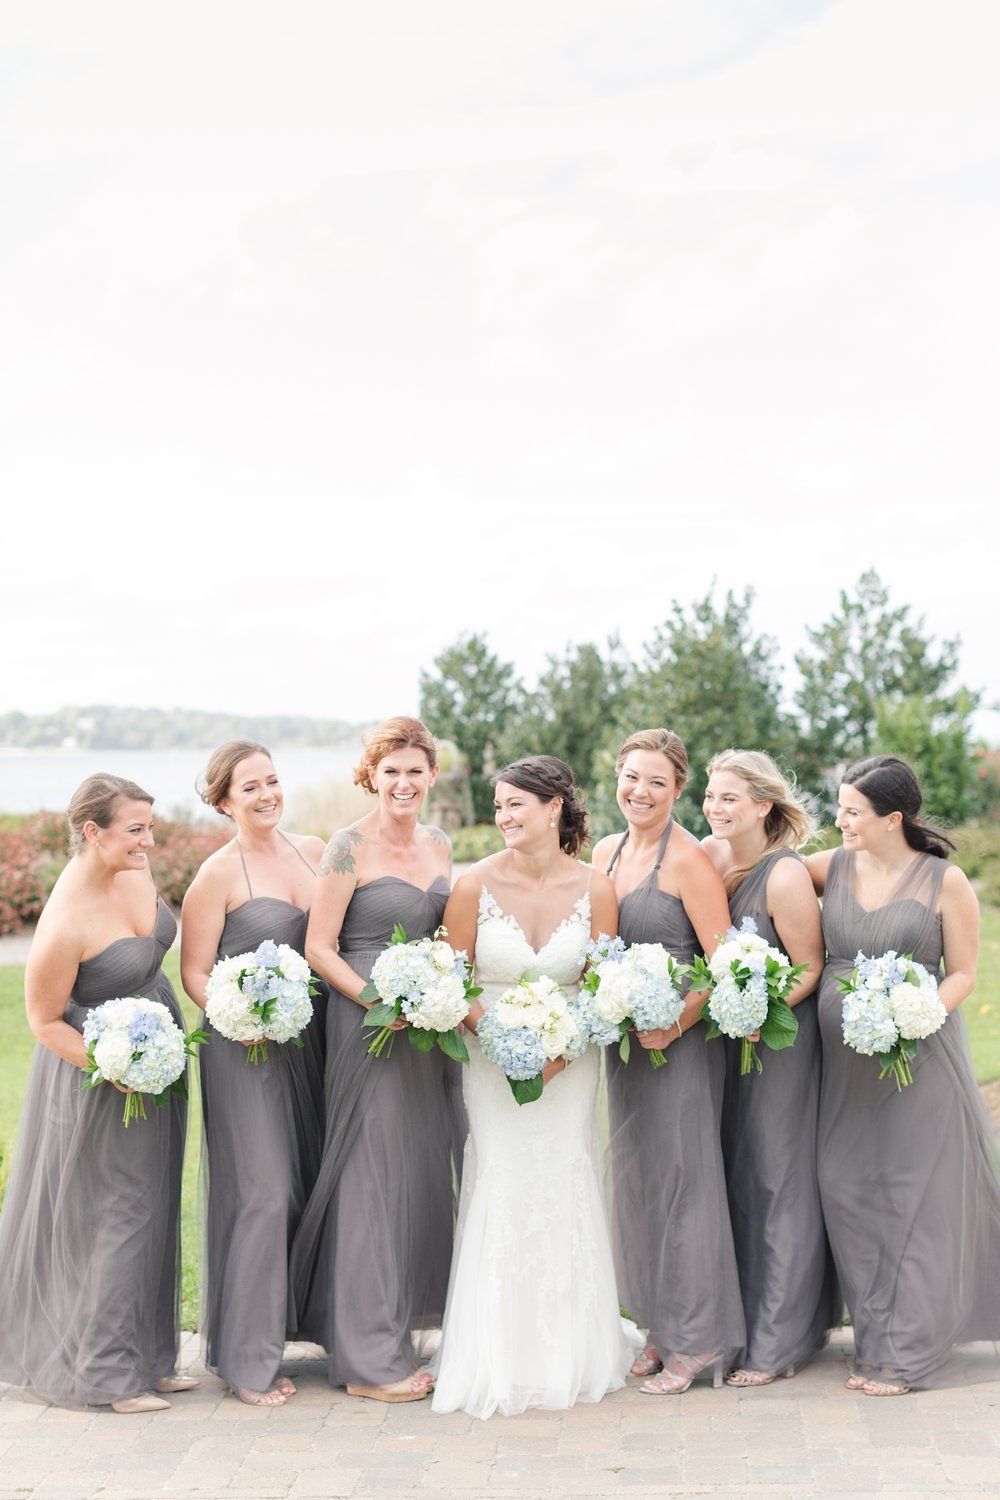 Scott Wedding 4-Bridal Party-528_baltimore-maryland-wedding-photography-anna-grace-photography-photo.jpg